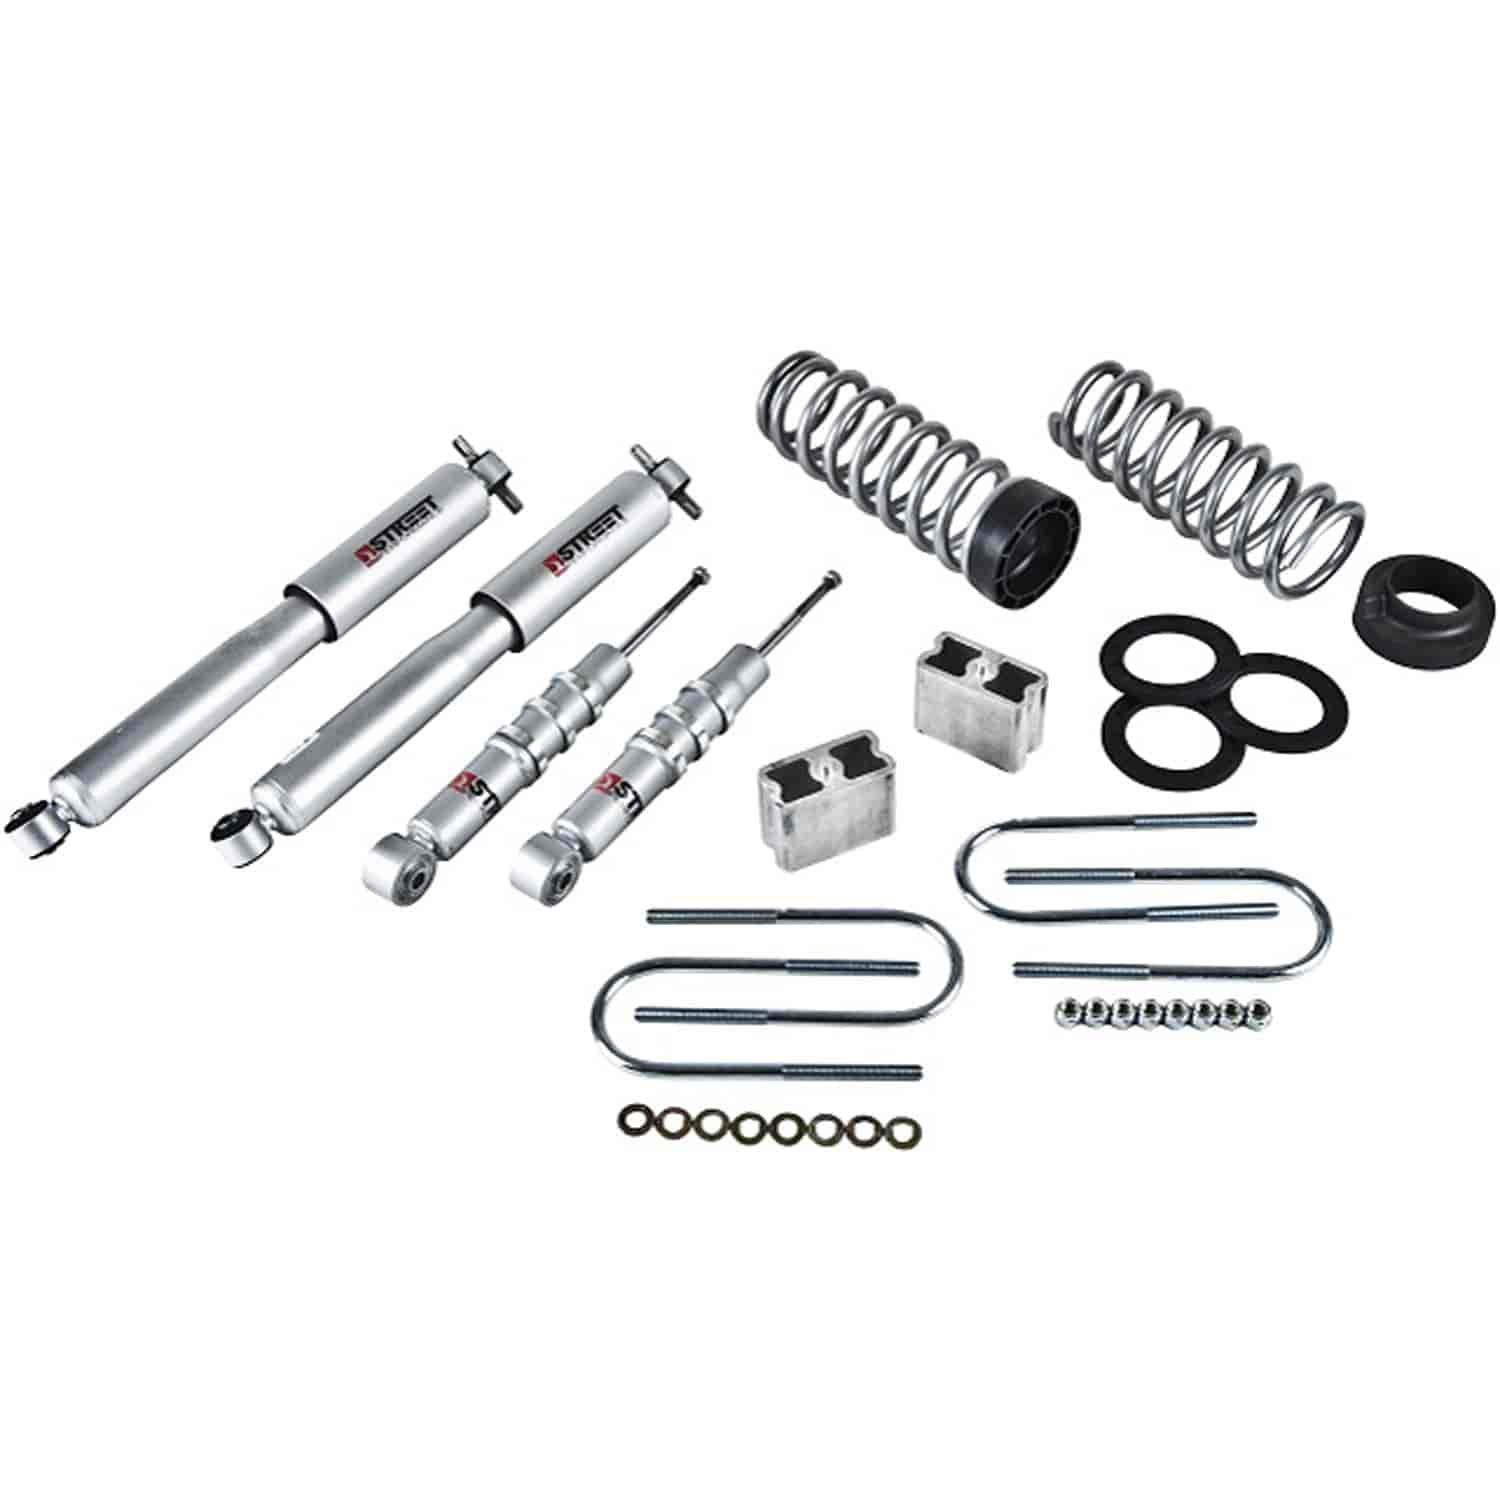 Belltech 602SP: Complete Lowering Kit for 2004-2012 Chevy